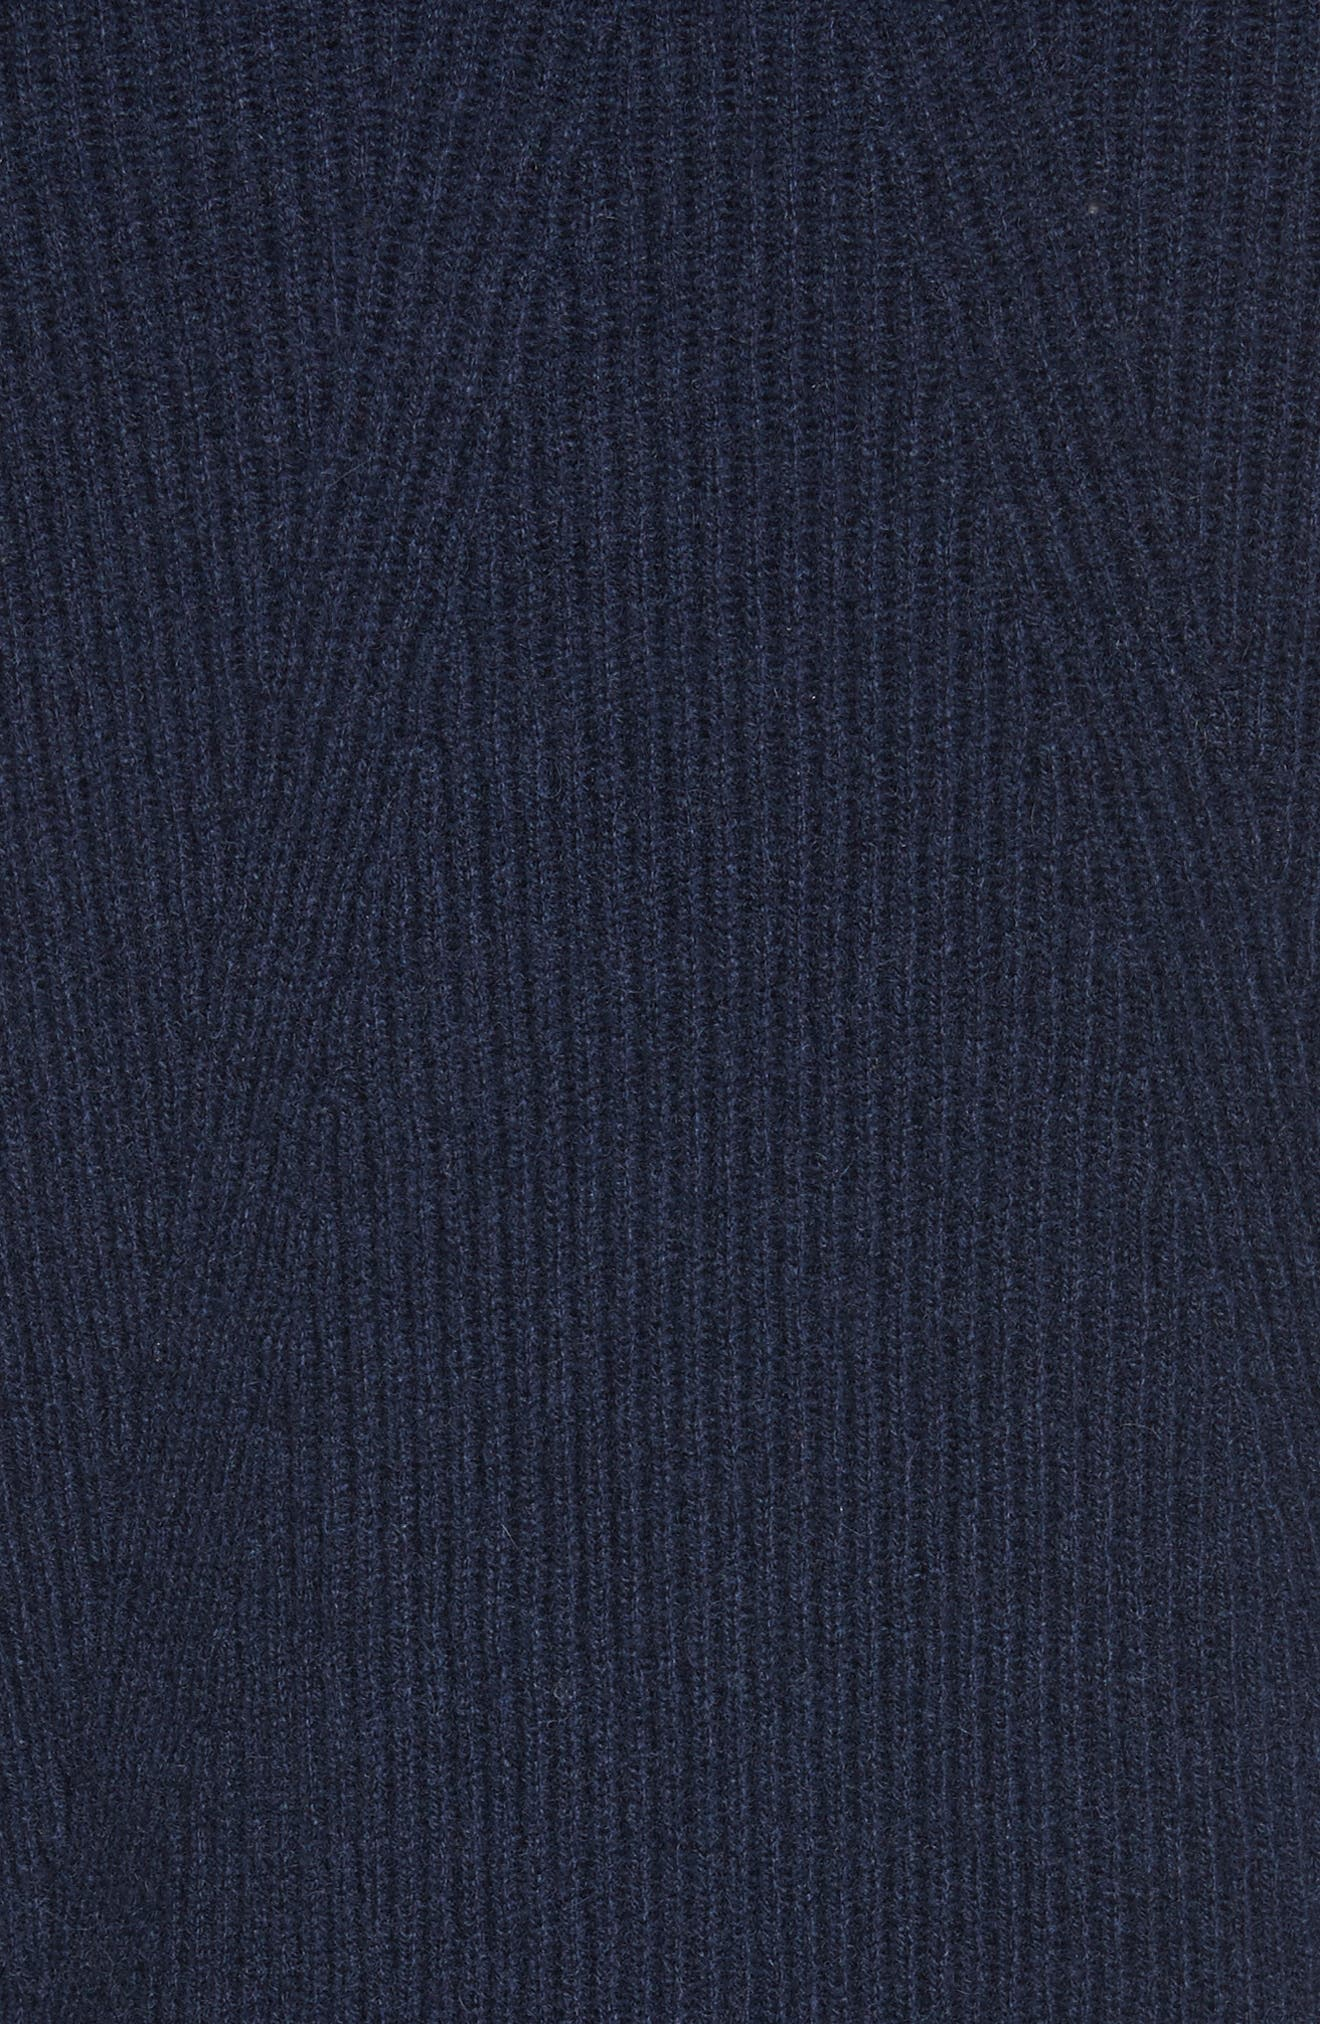 Ace Cashmere Crop Sweater,                             Alternate thumbnail 5, color,                             Navy